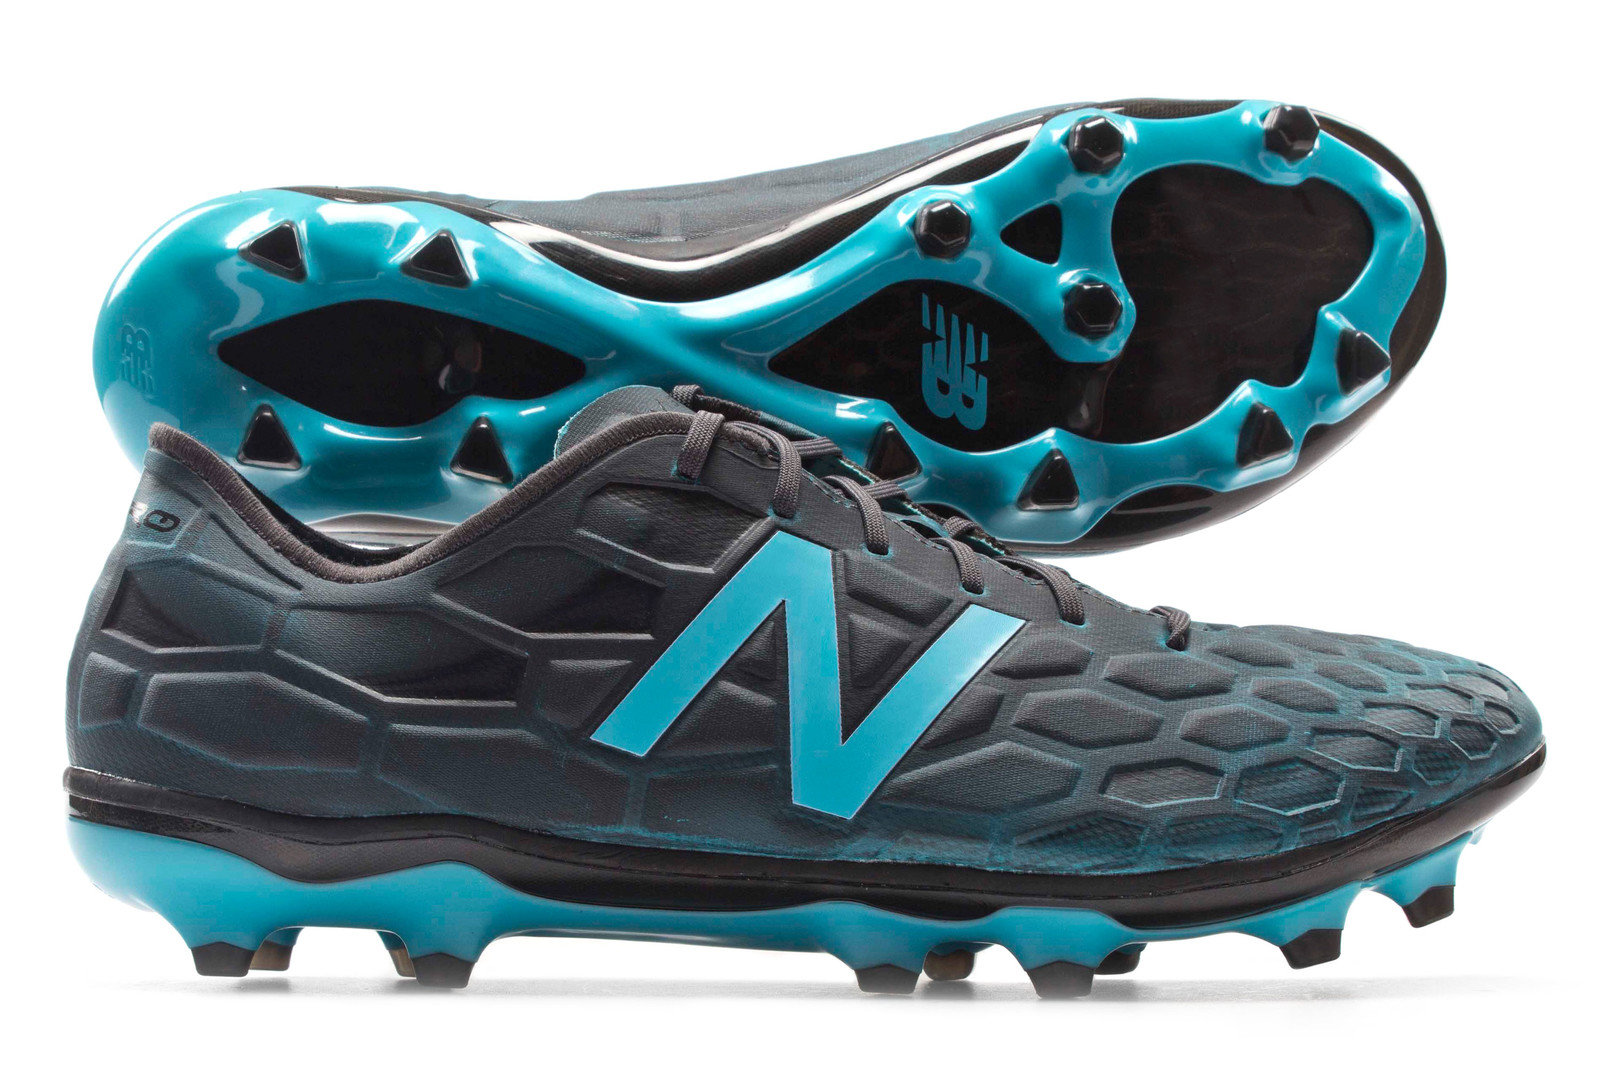 d0e4c8959be7 Details about New Balance Mens Visaro 2.0 Force Limited Edition FG Football  Boots Shoes Sports